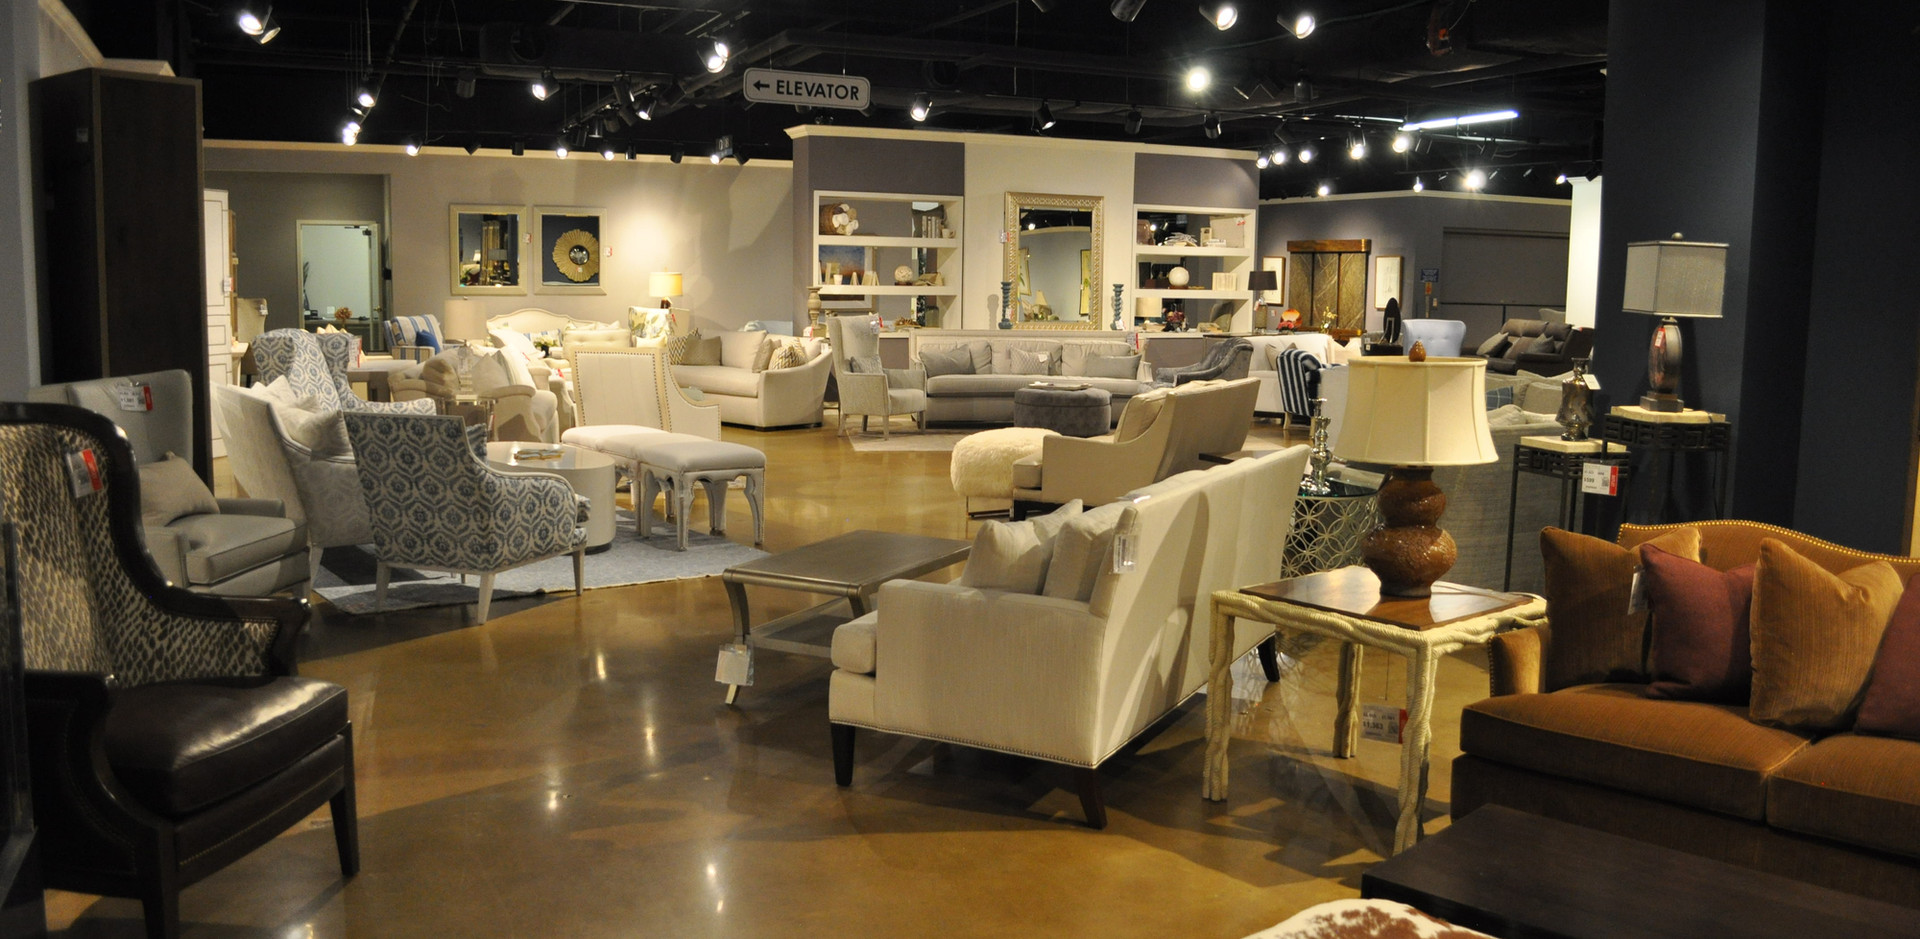 FurnitureLand South, Showroom 2